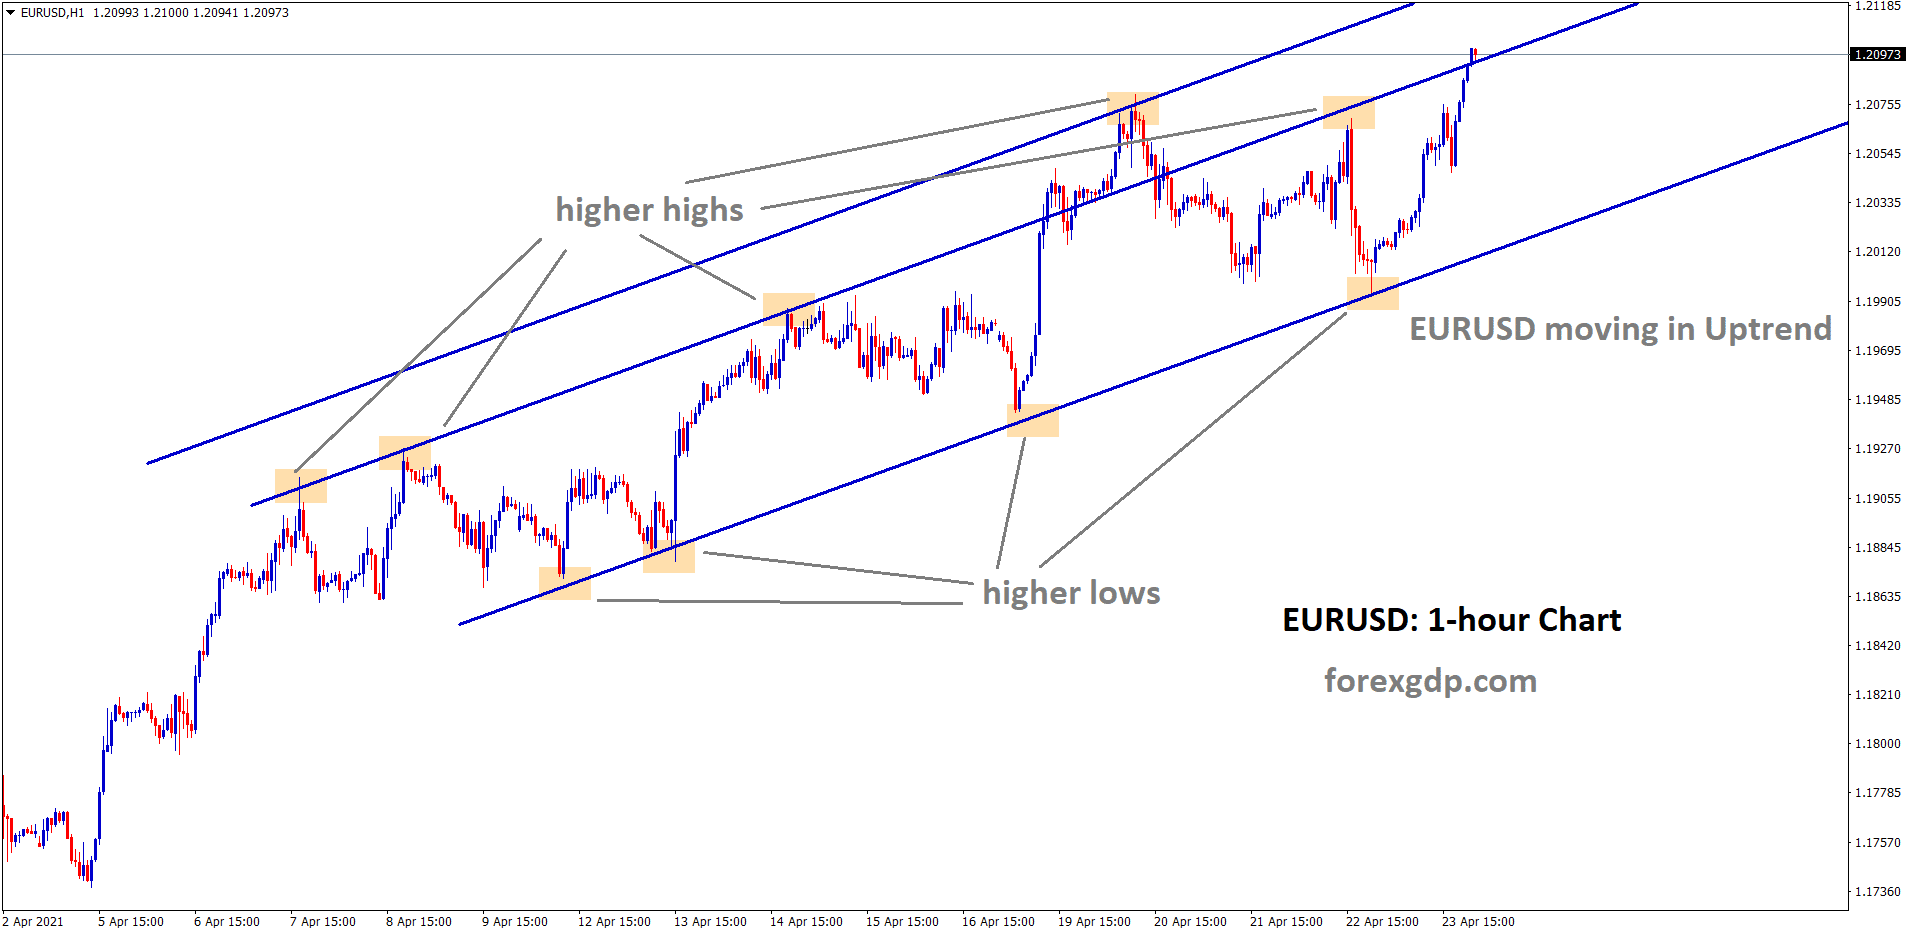 EURUSD moving in uptrend with higher highs and lows